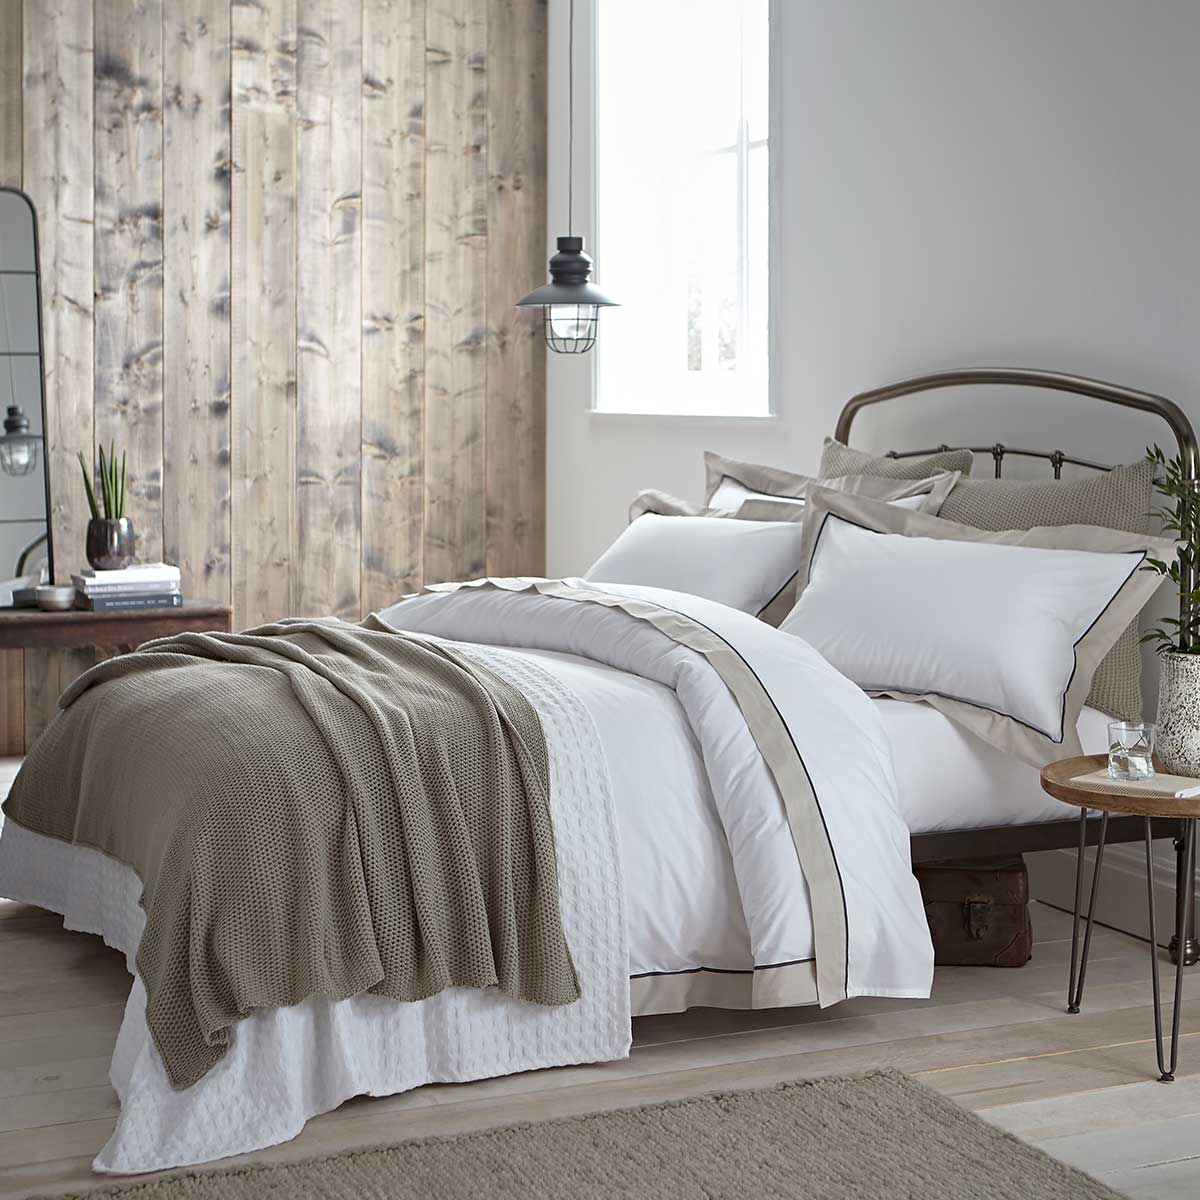 Milano Duvet and Pillow Set in Natural